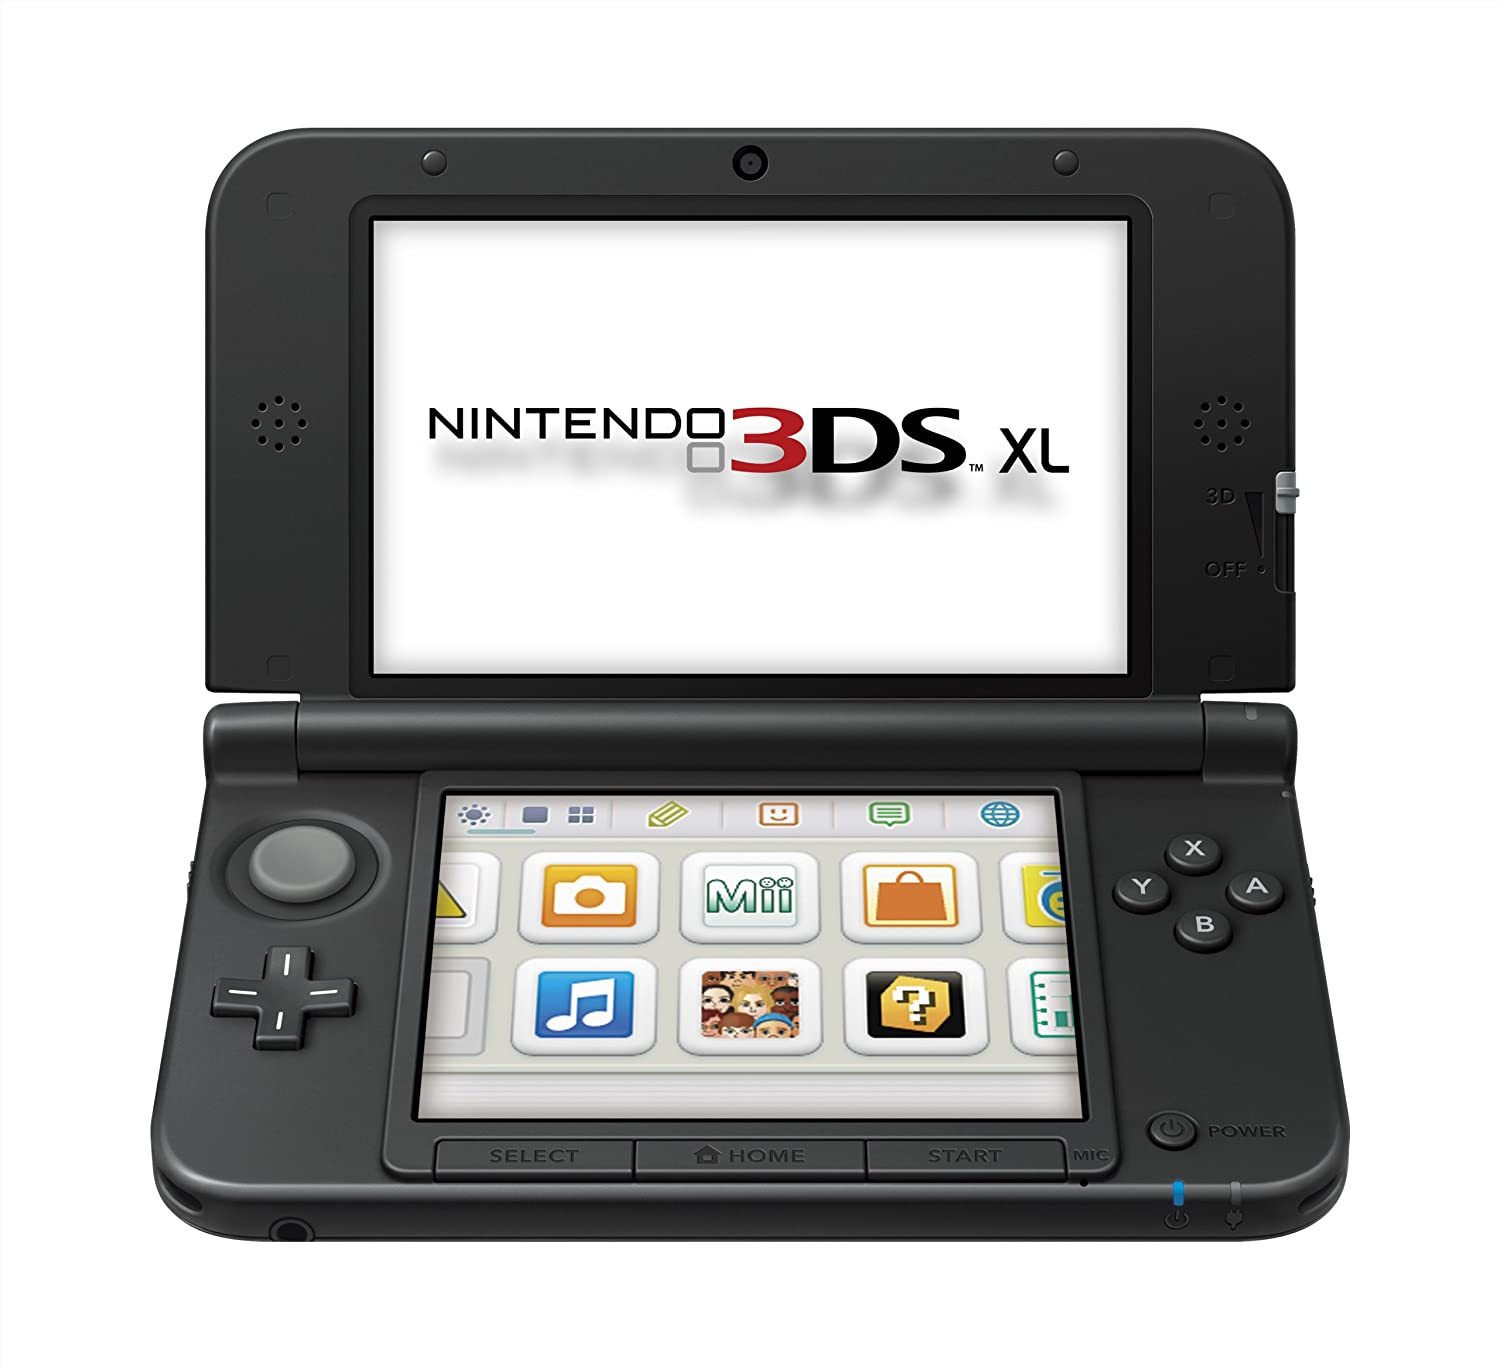 Nintendo 3DS - Consola XL, Color Negro Y Azul: Amazon.es ...